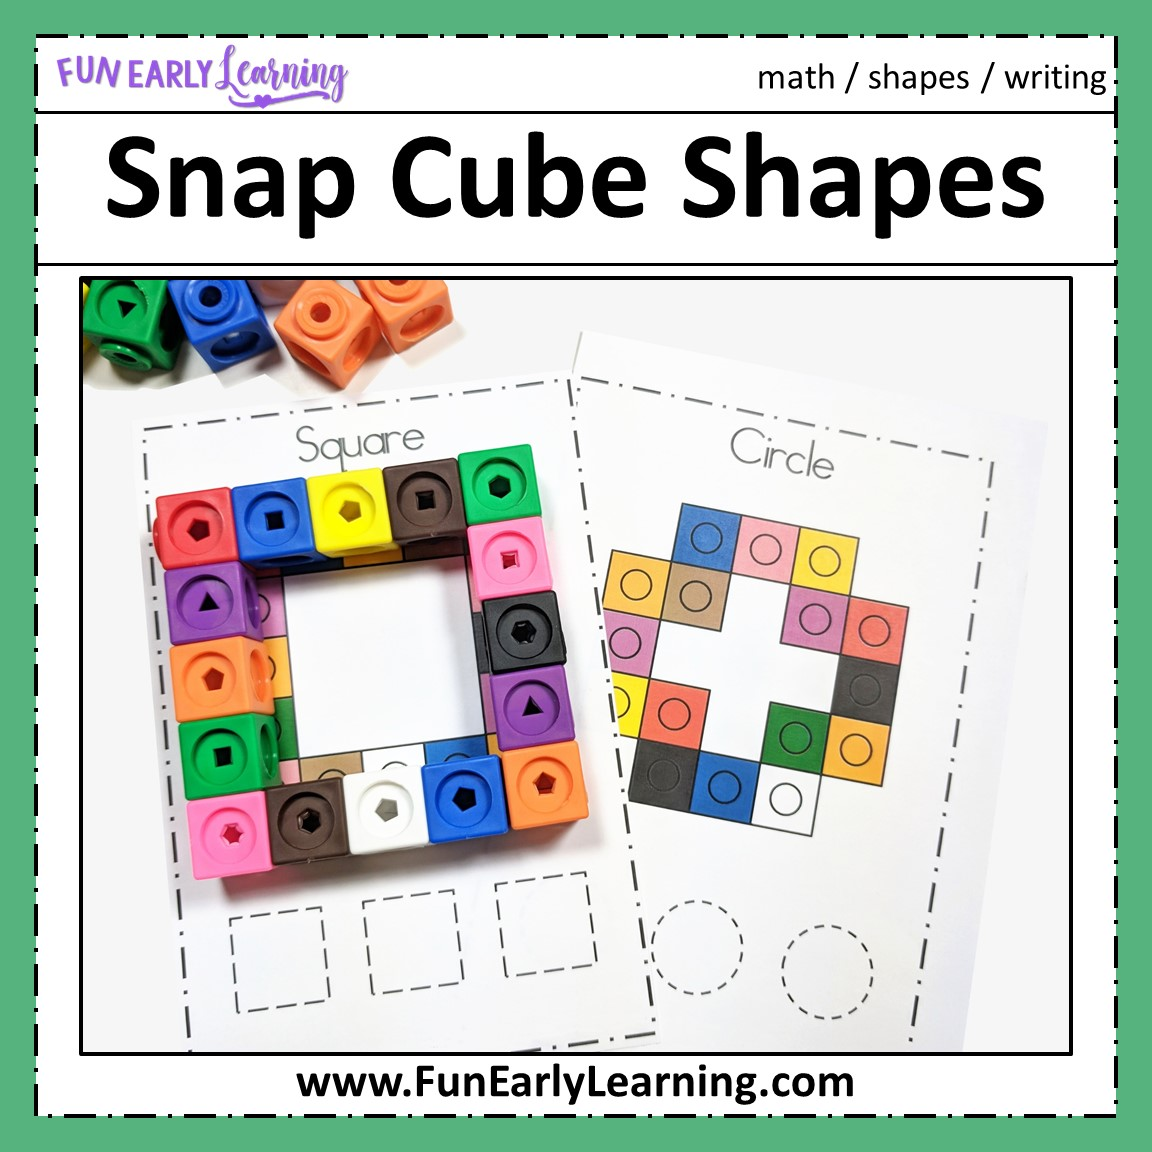 Snap Cube Shapes